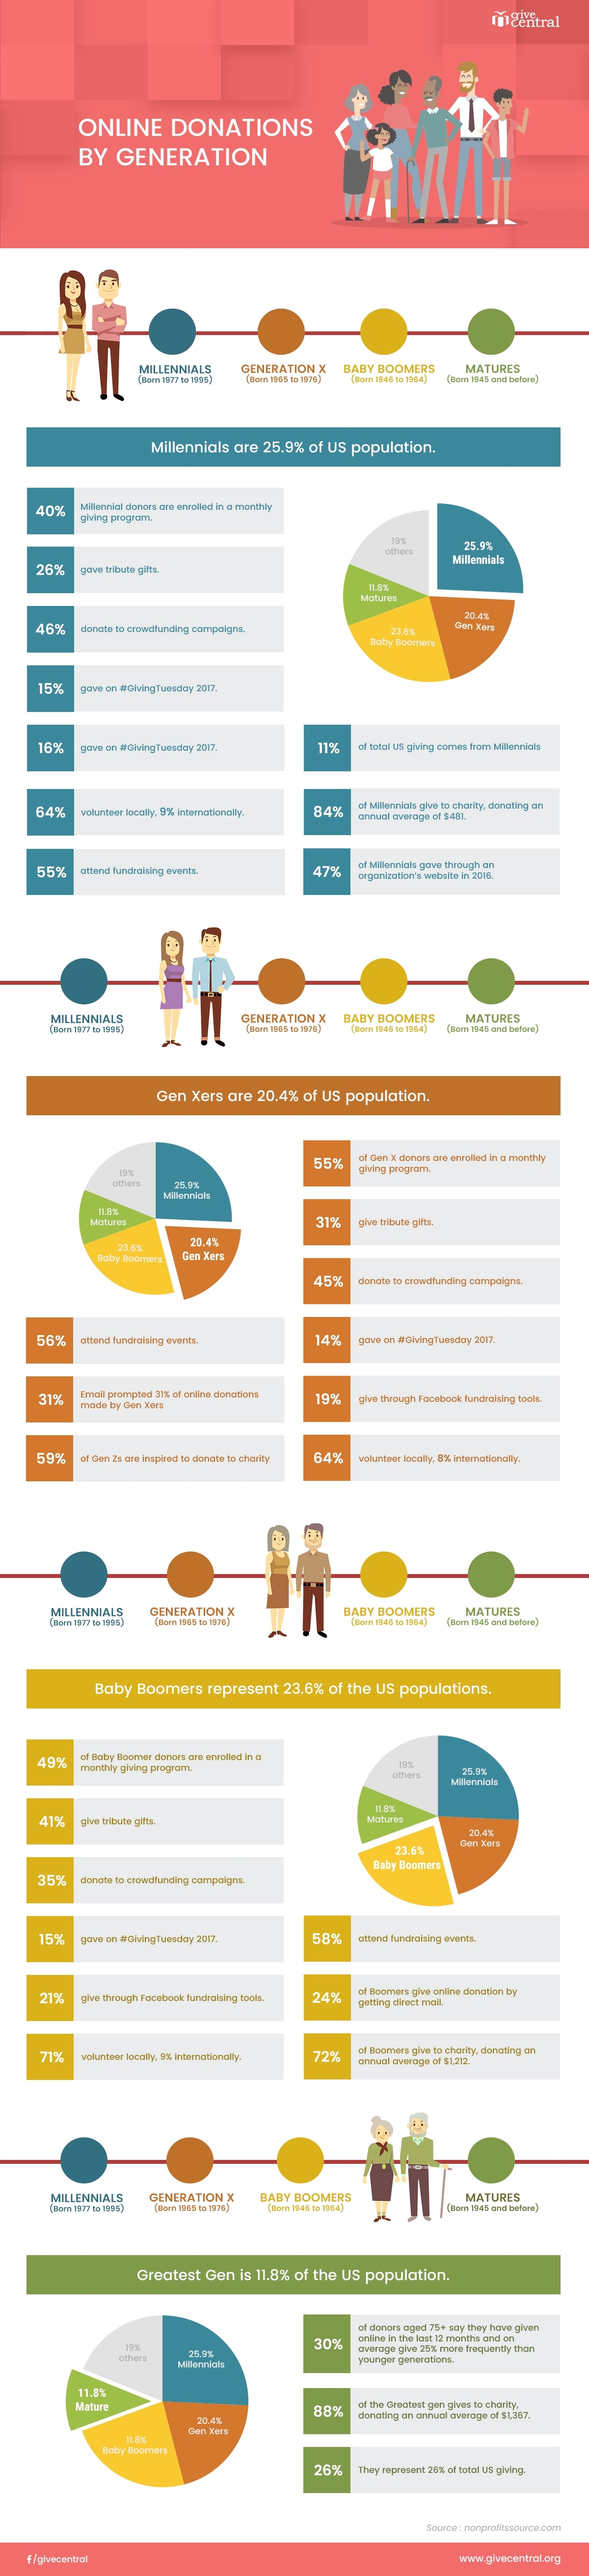 Infographic online donation facts across generations